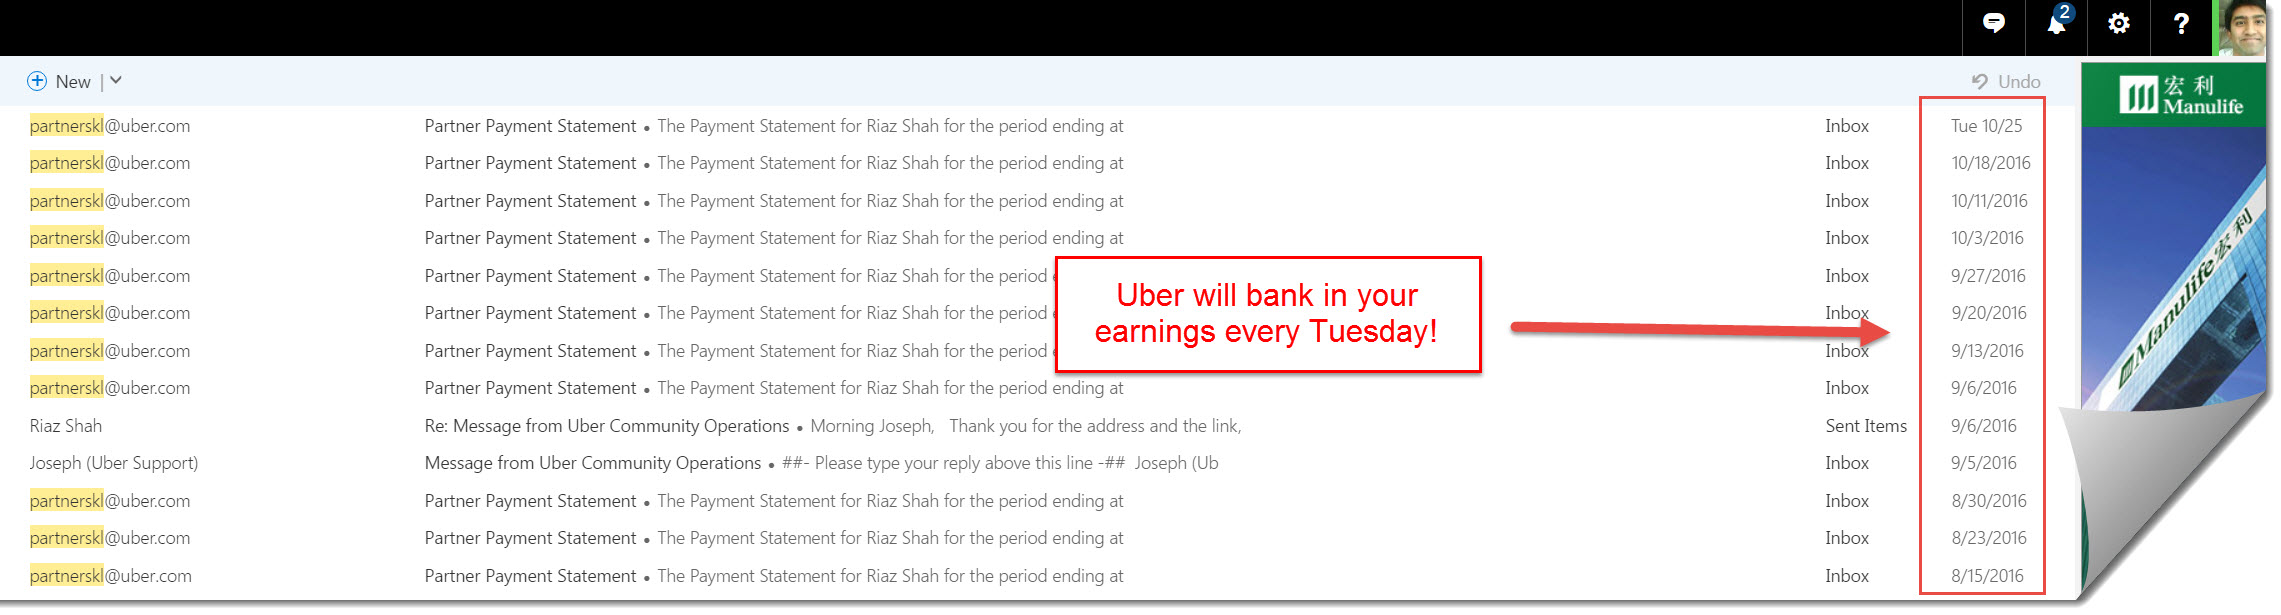 Uber bank in statements